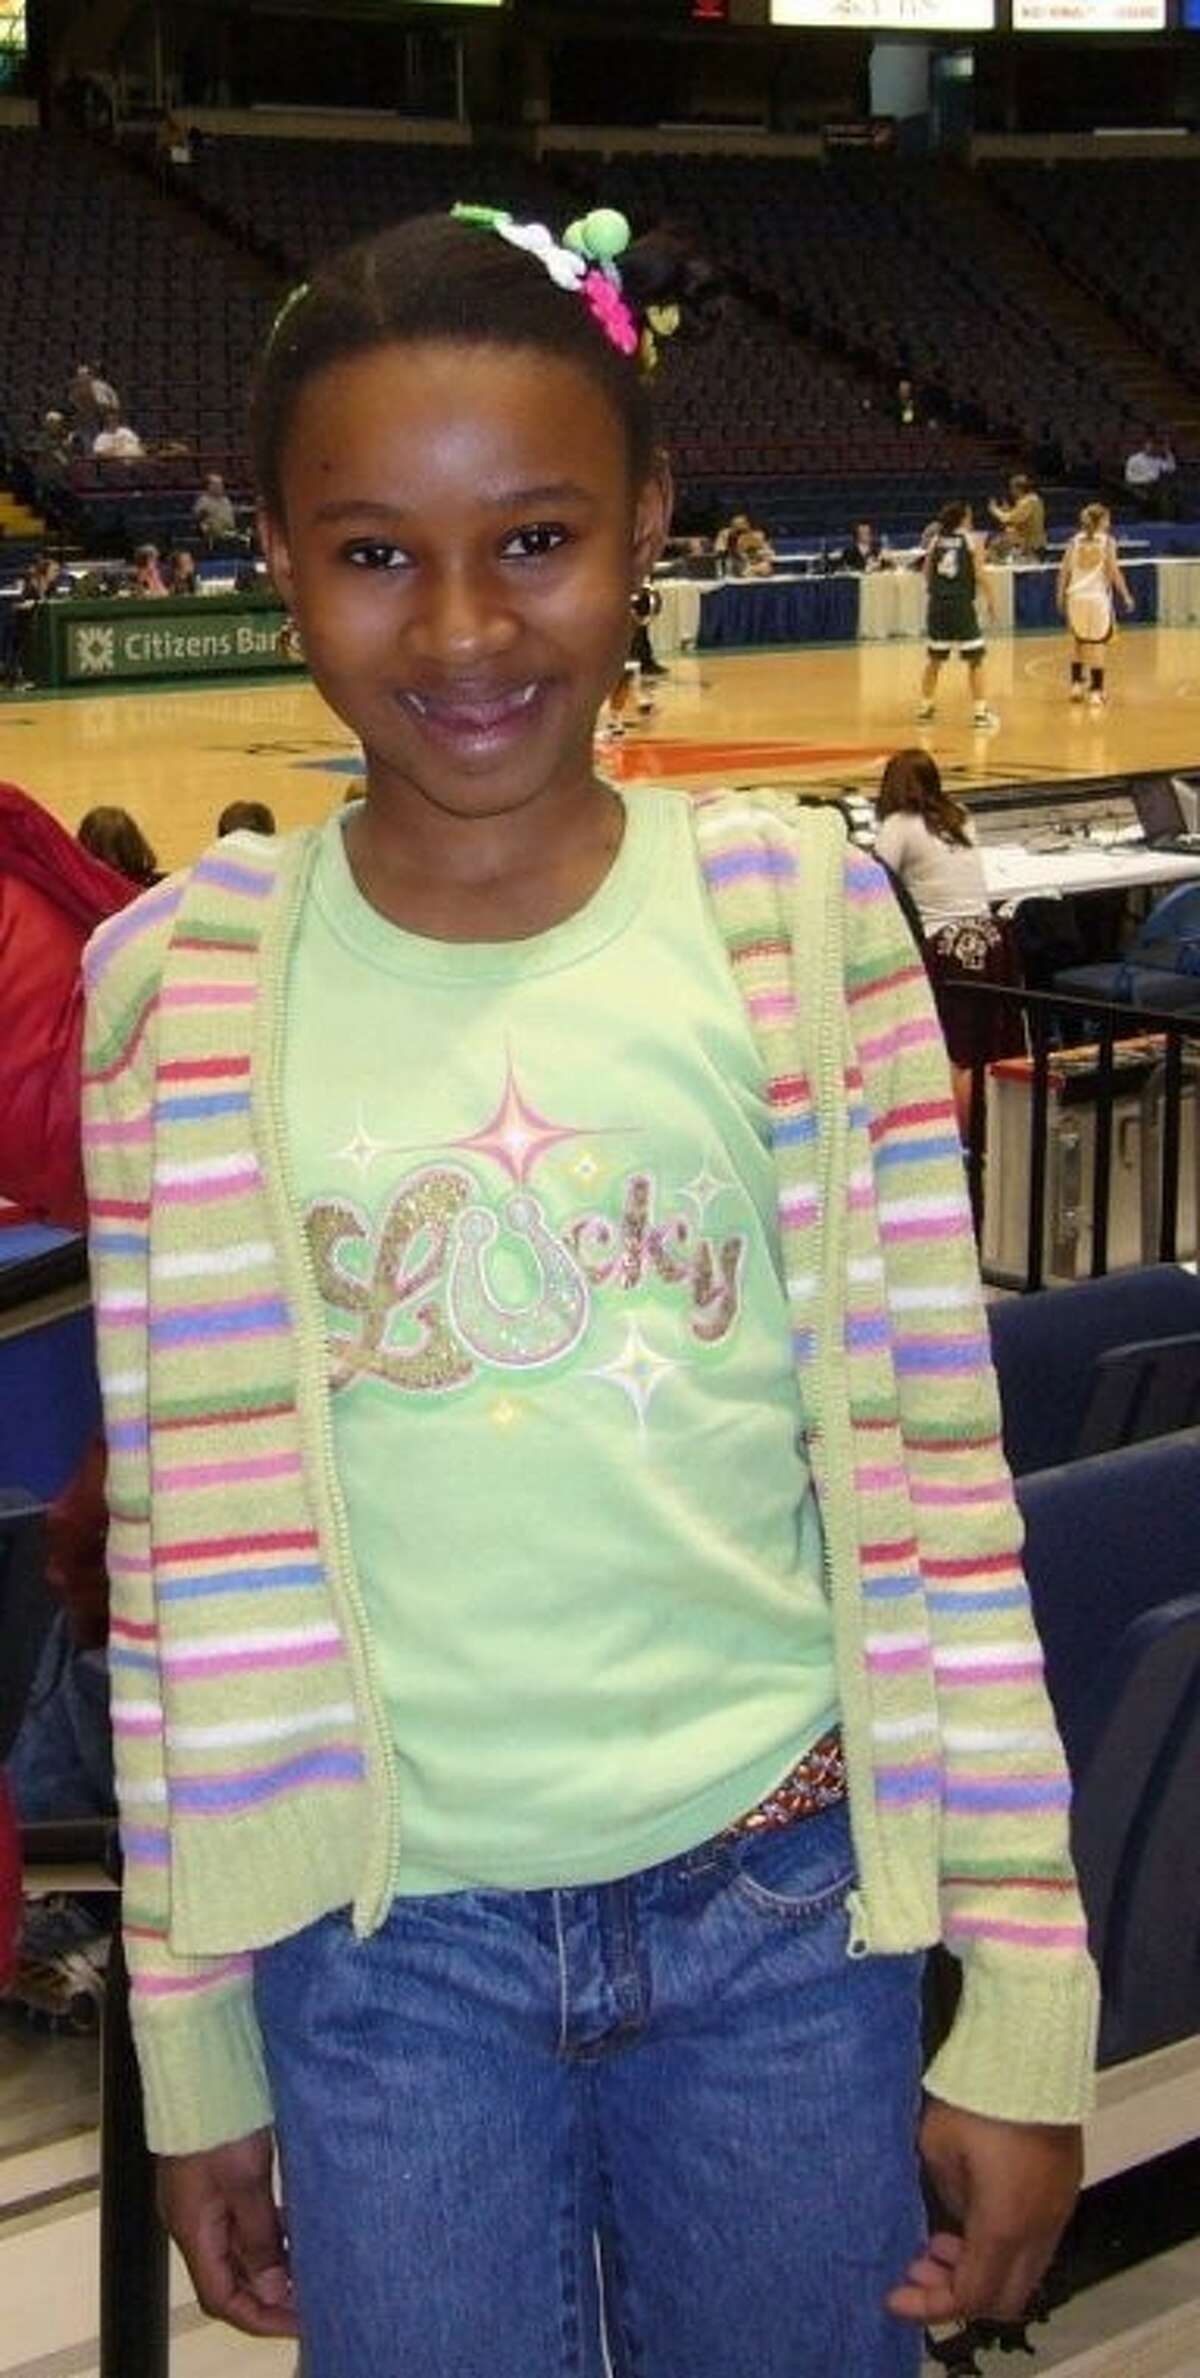 Kathina Thomas at the 2008 MAAC Women's Basketball Tournament at the Times Union Center on March 7, 2008. (Photo courtesy City School District of Albany)